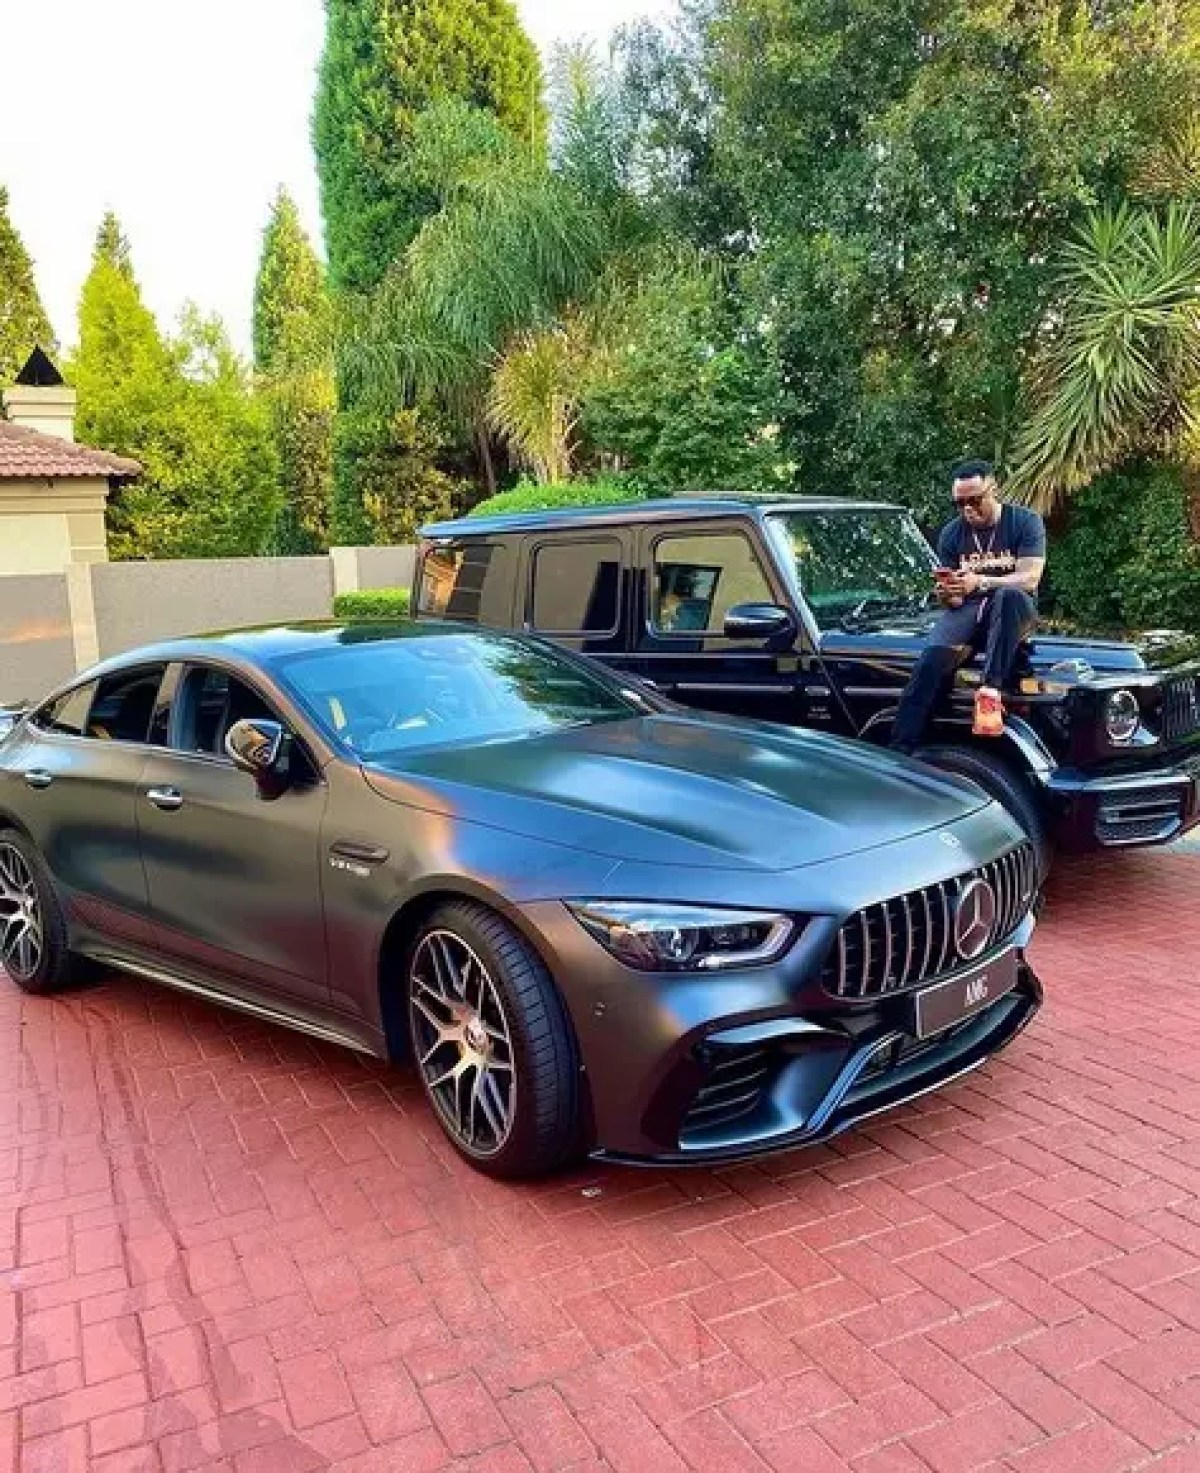 Dj Tira Mercedes AMG coupe and Mercedes AMG G class G63